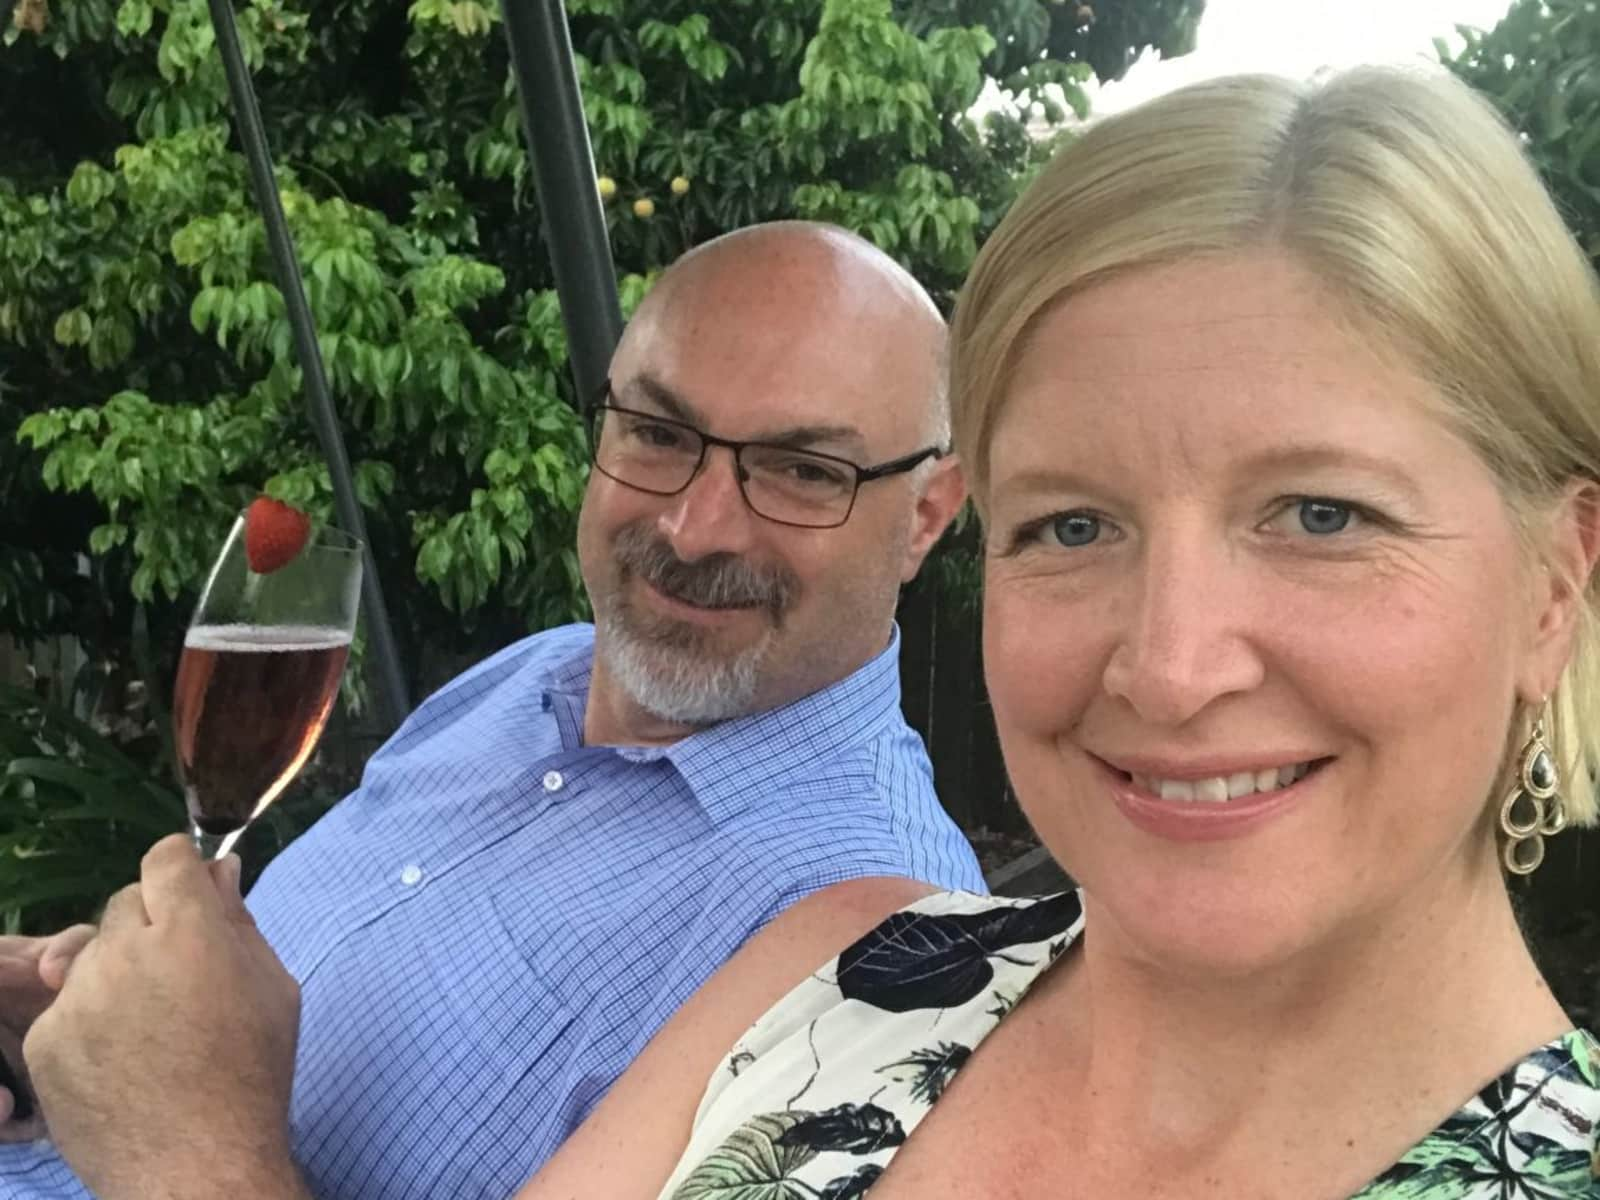 Michelle & David from Brisbane, Queensland, Australia